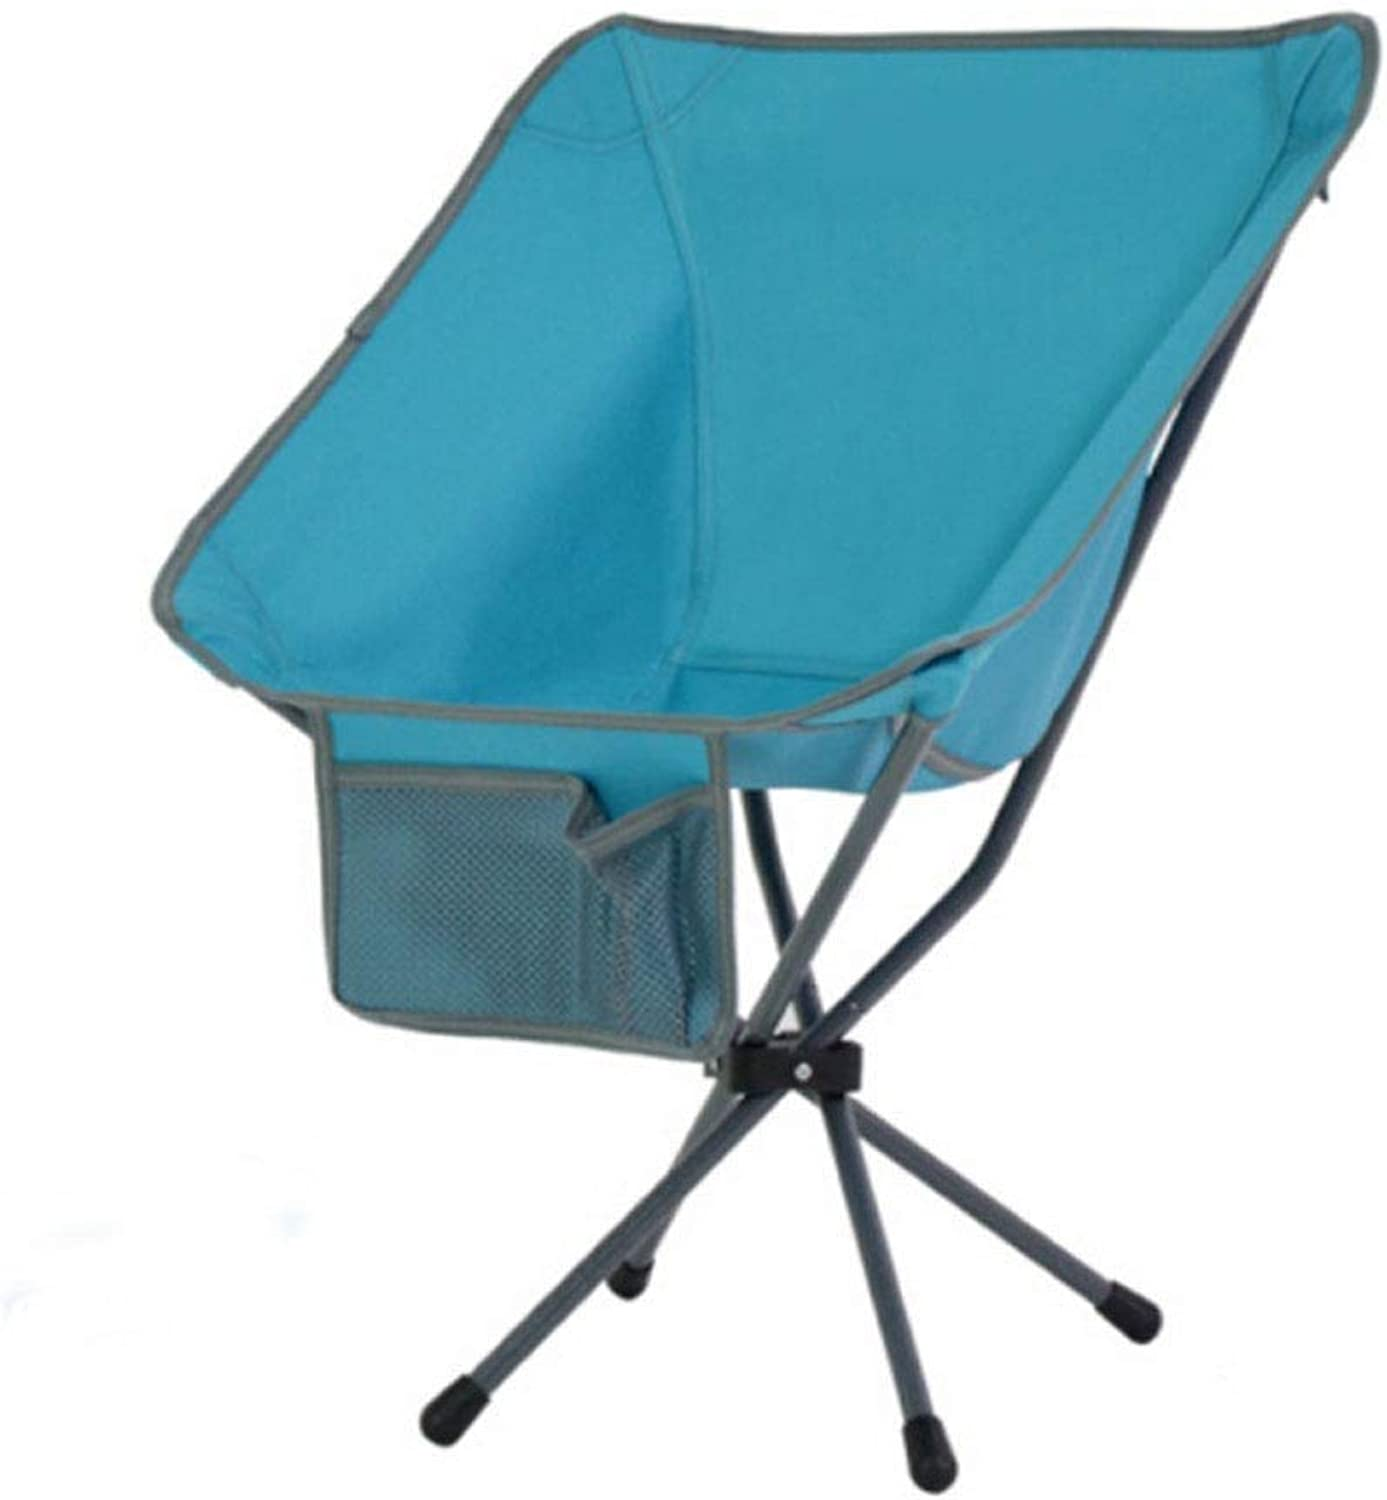 Creative Outdoor Portable Folding Chair Camping Stool with Backrest Storage Bag Indoor Picnic Travel Fishing Mountaineering Barbecue Park Adventure Beach 2 colors Optional